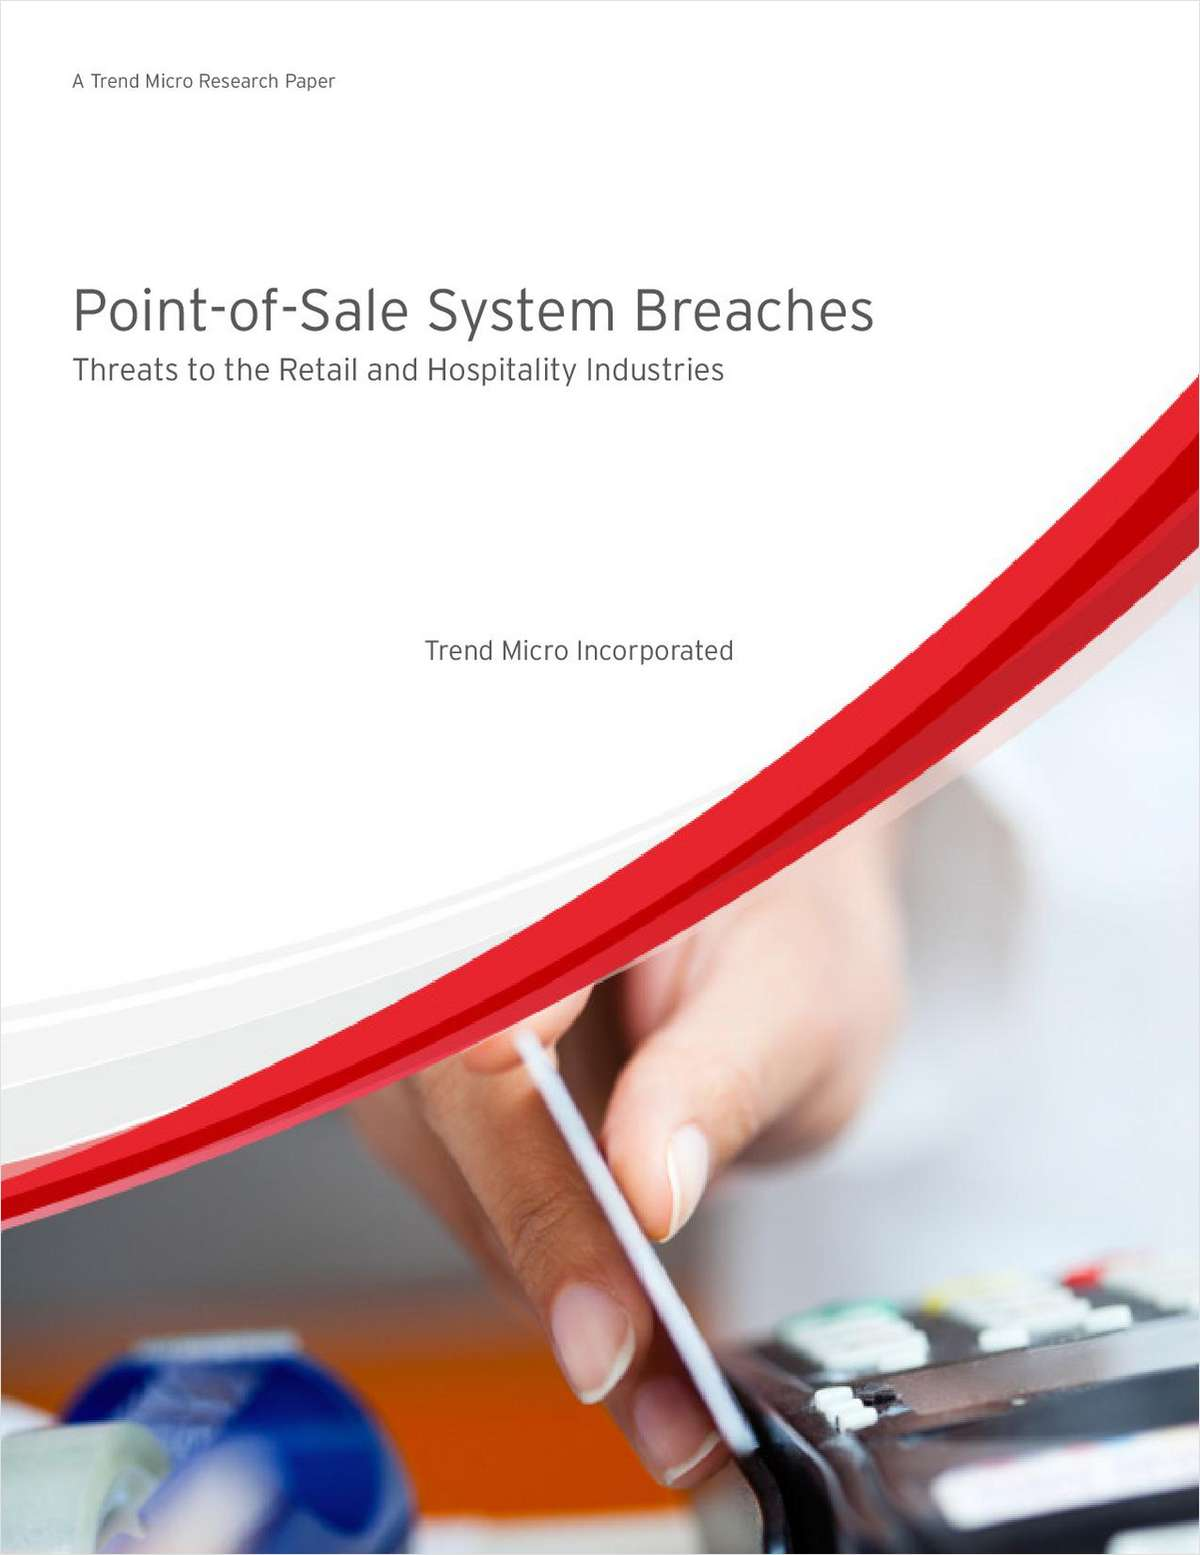 Point-of-Sale System Breaches